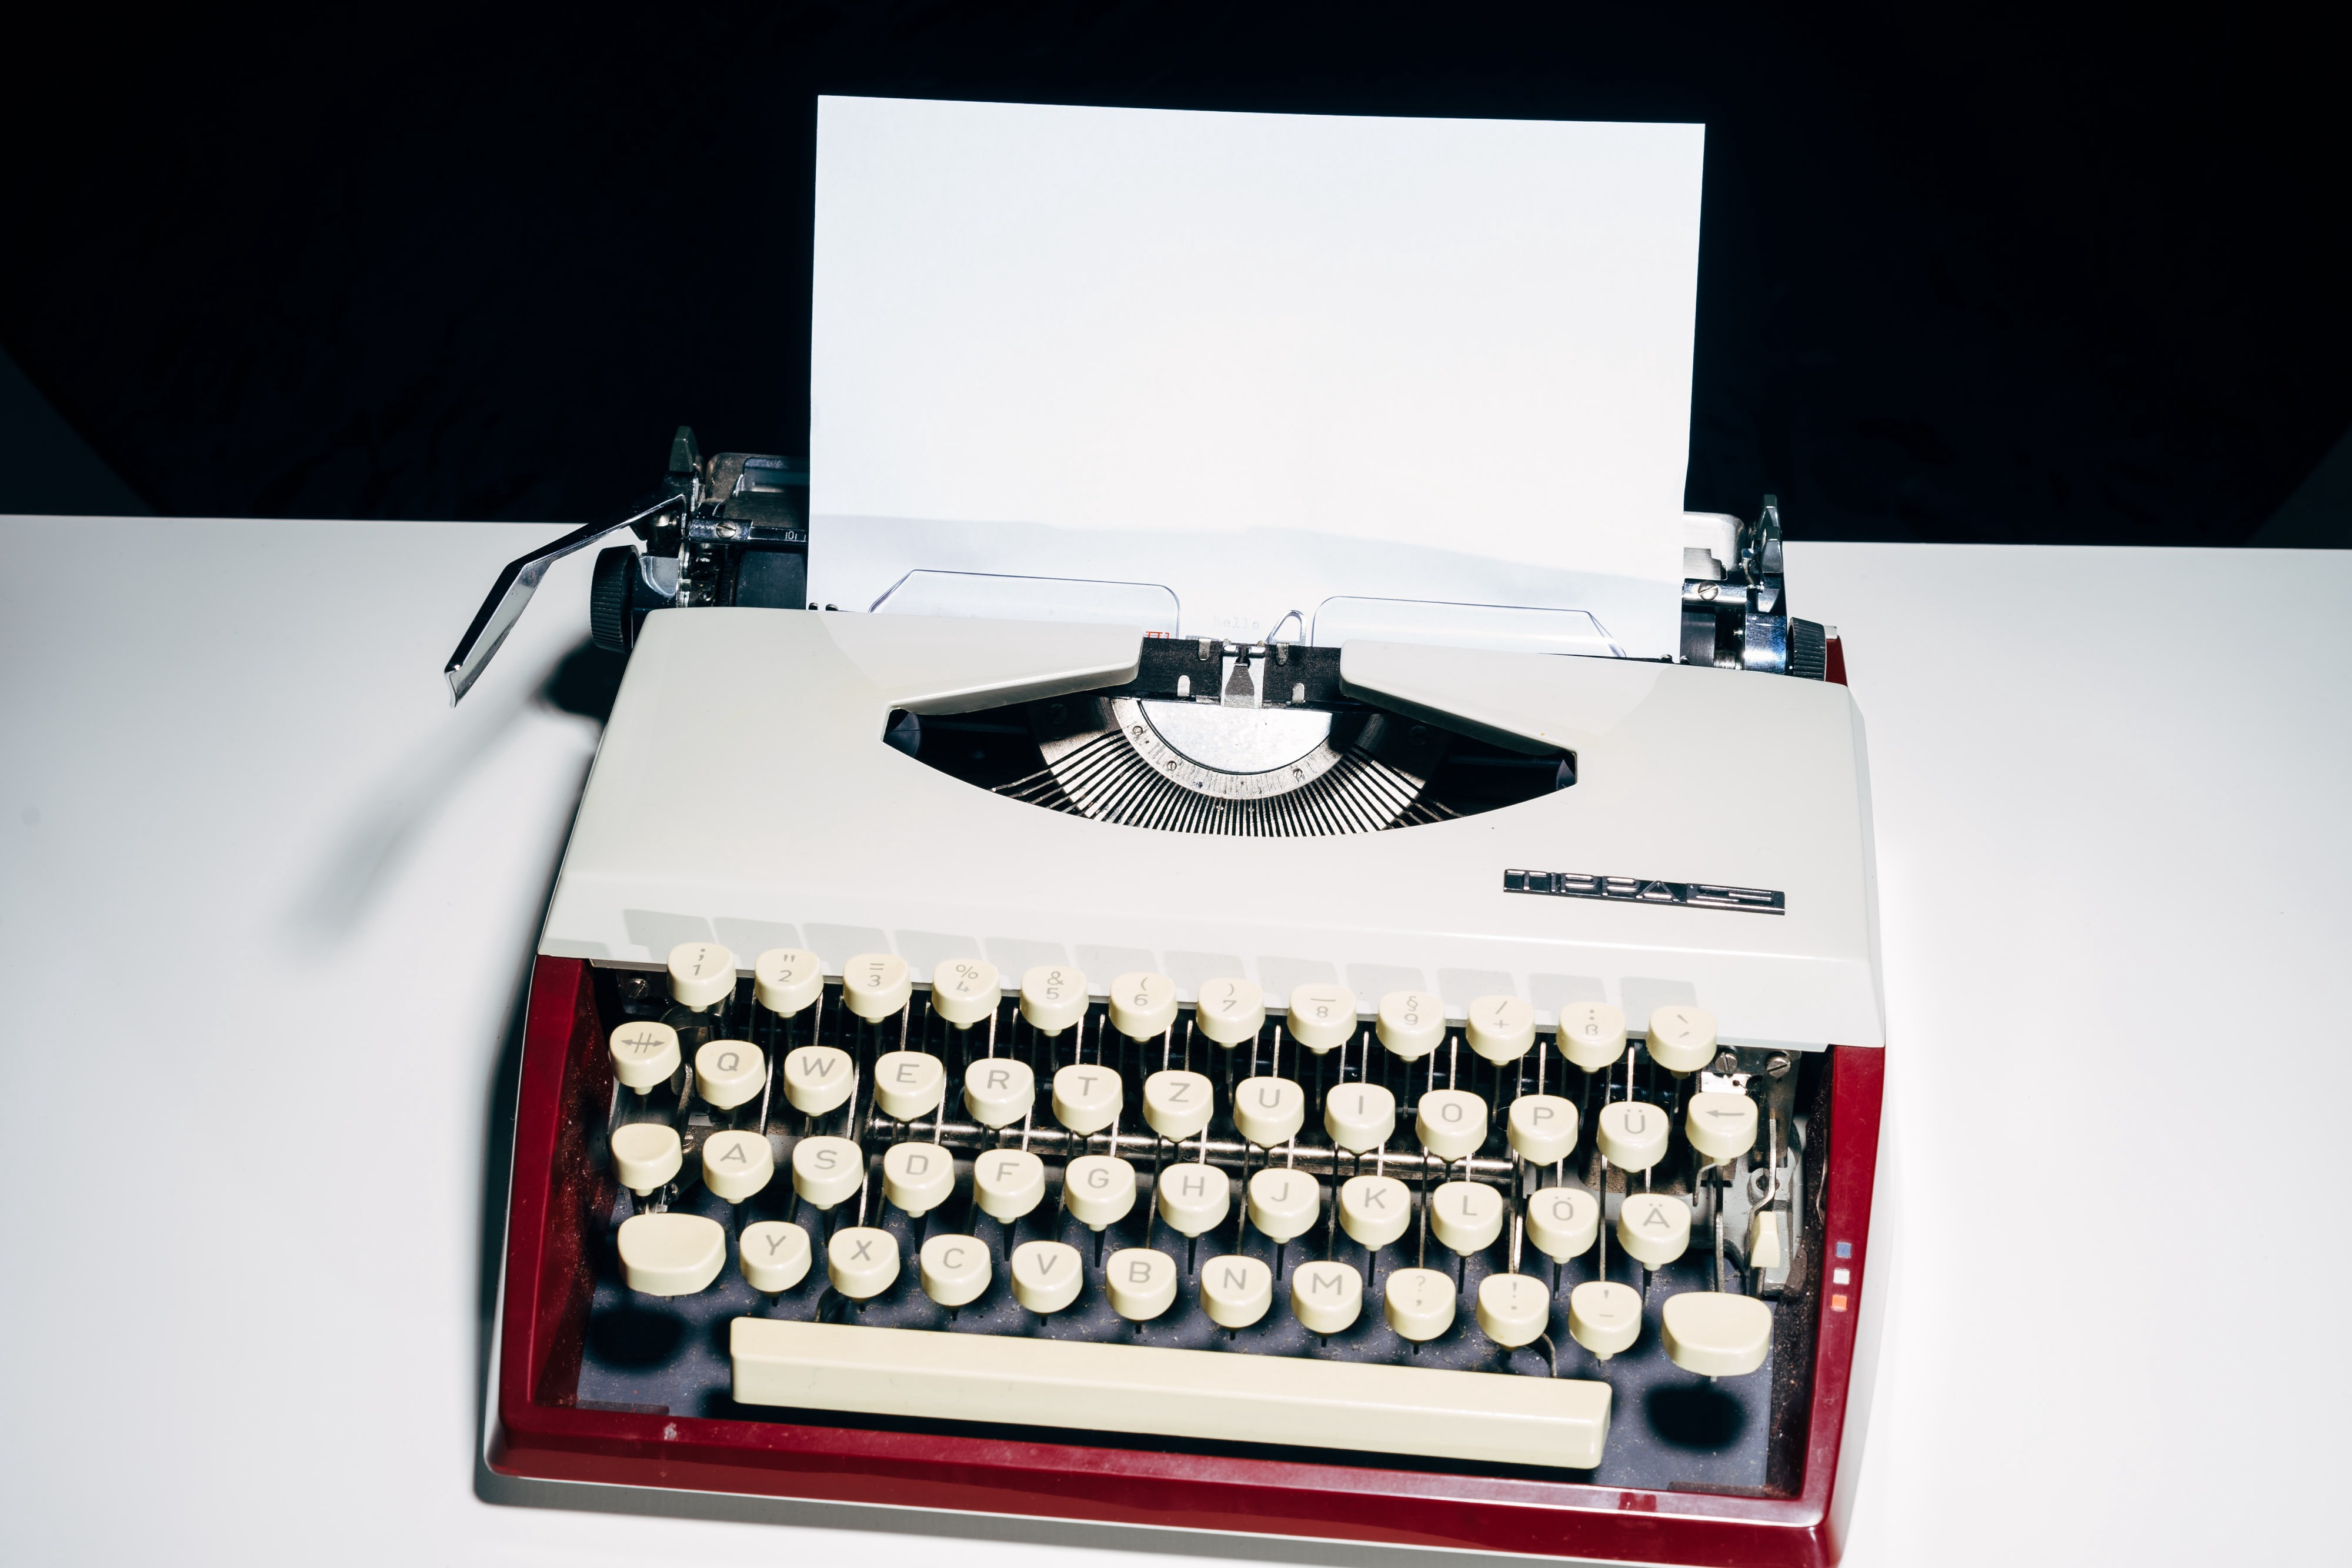 A manual typewriter with a sheet of blank paper in it.